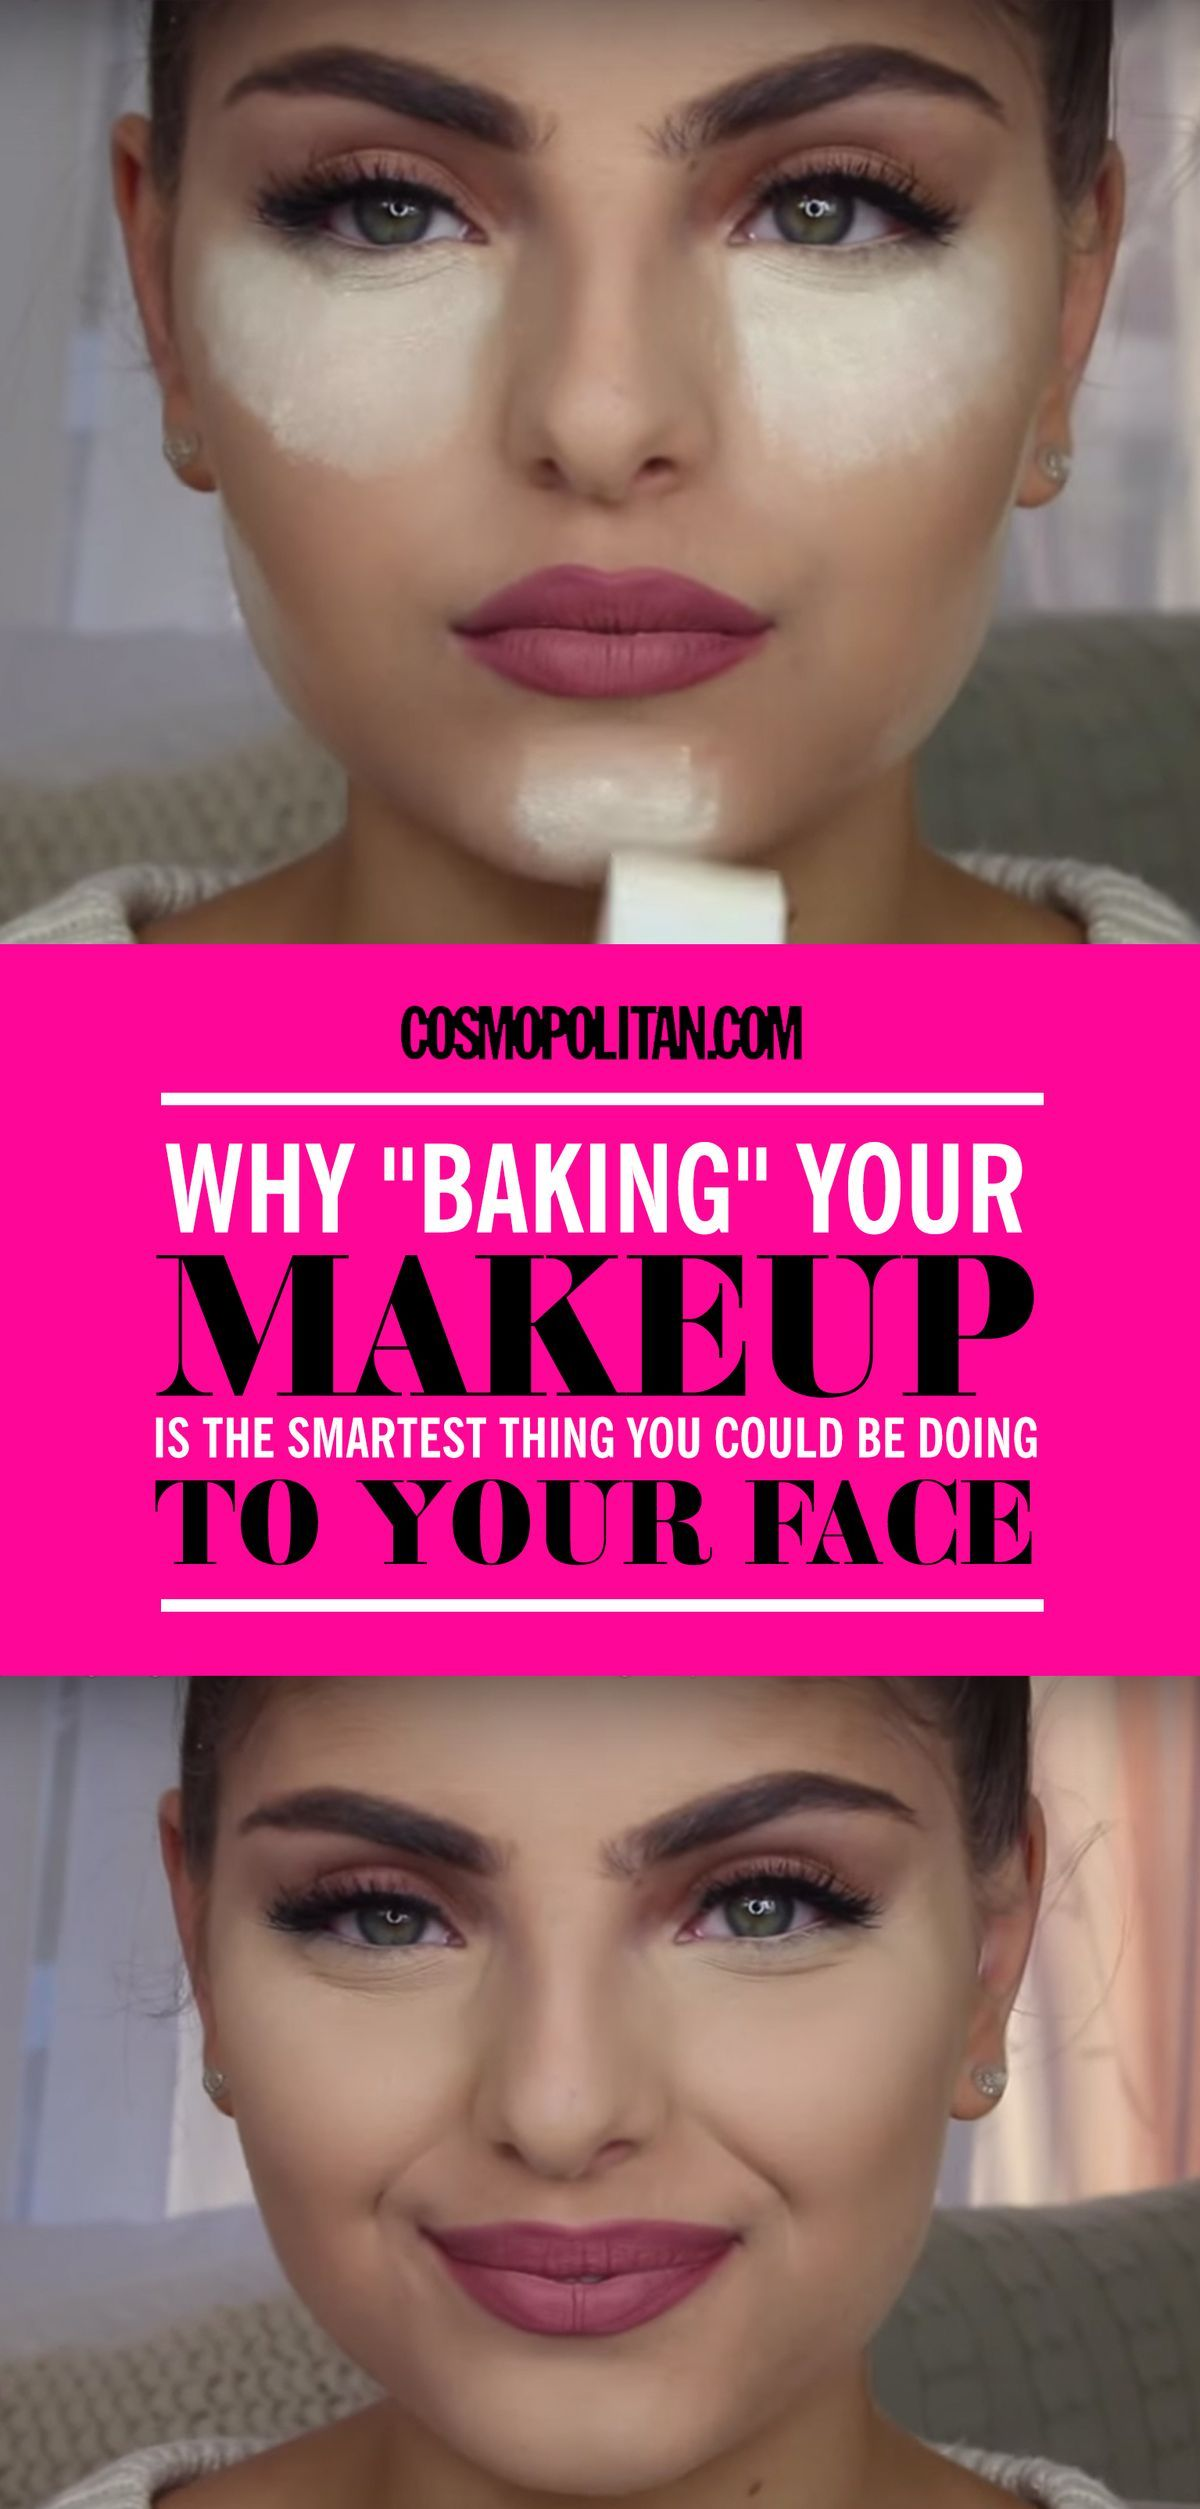 Baking Your Makeup Is the Smartest Thing You Could Be Doing to Your Face